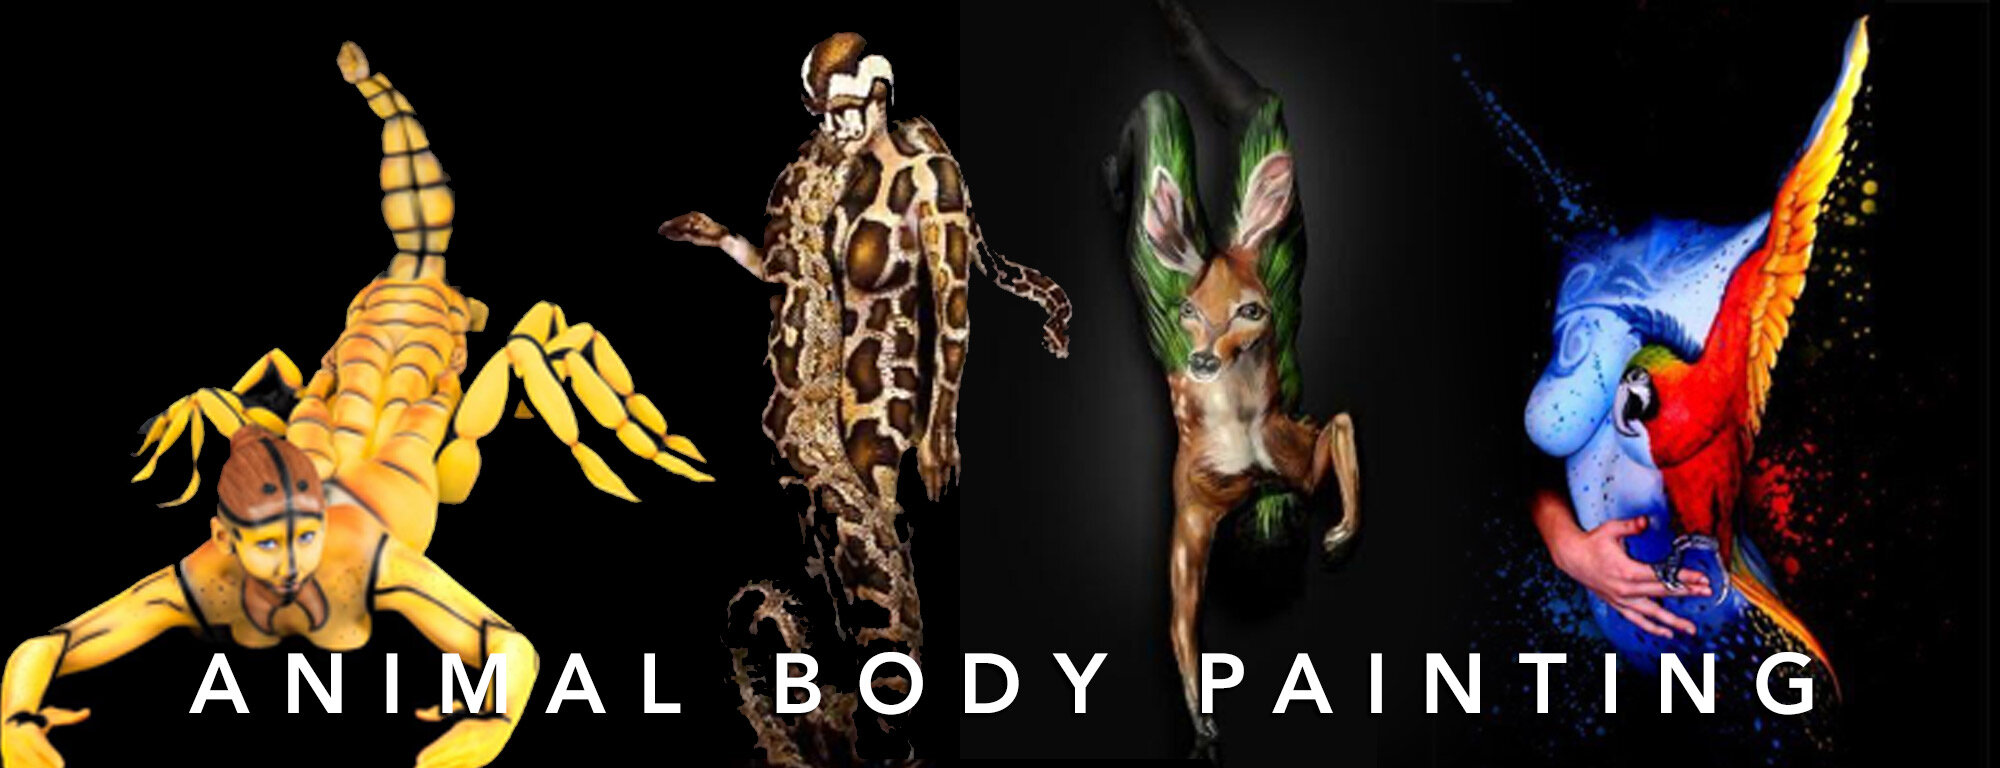 54 Animal Bodypaint Images The Ultimate Guide Trina Merry